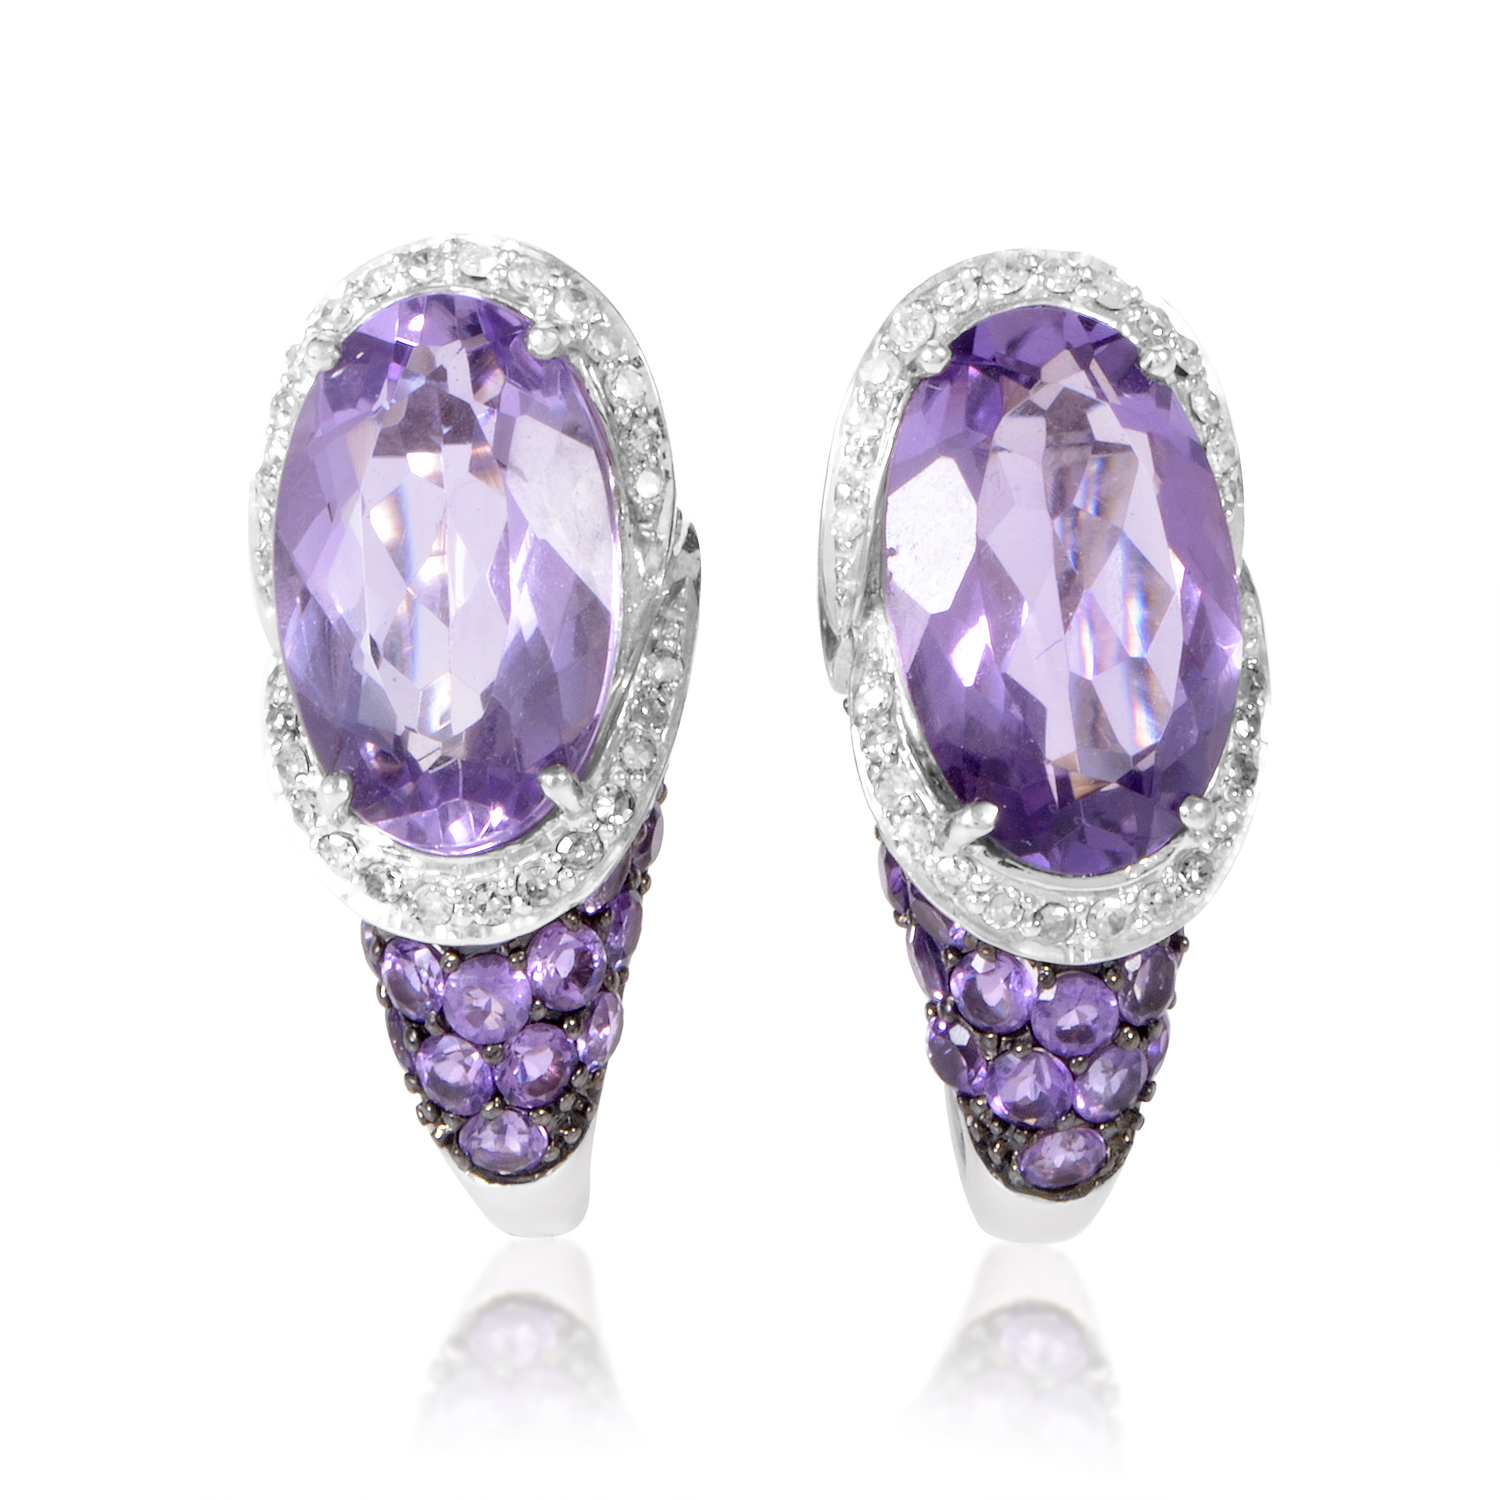 14K White Gold Diamond & Amethyst Huggie Earrings EL4-10030WAM